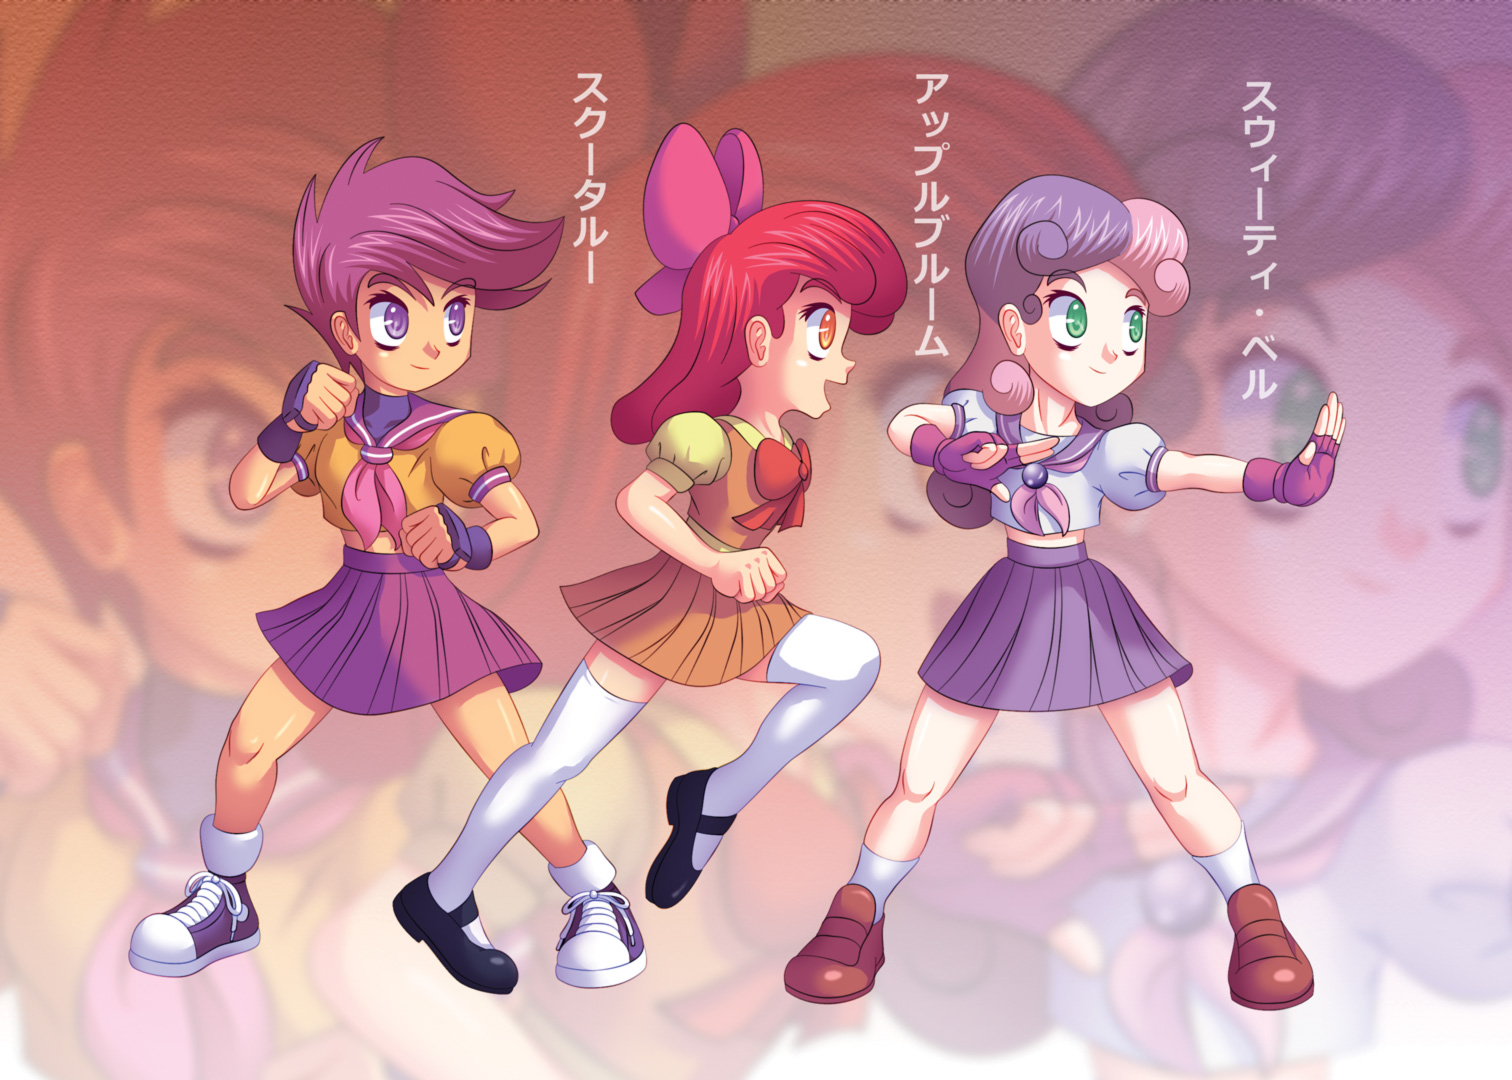 Cutie Mark Crusaders, Fighting Schoolgirls YAY! by Agu-Fungus